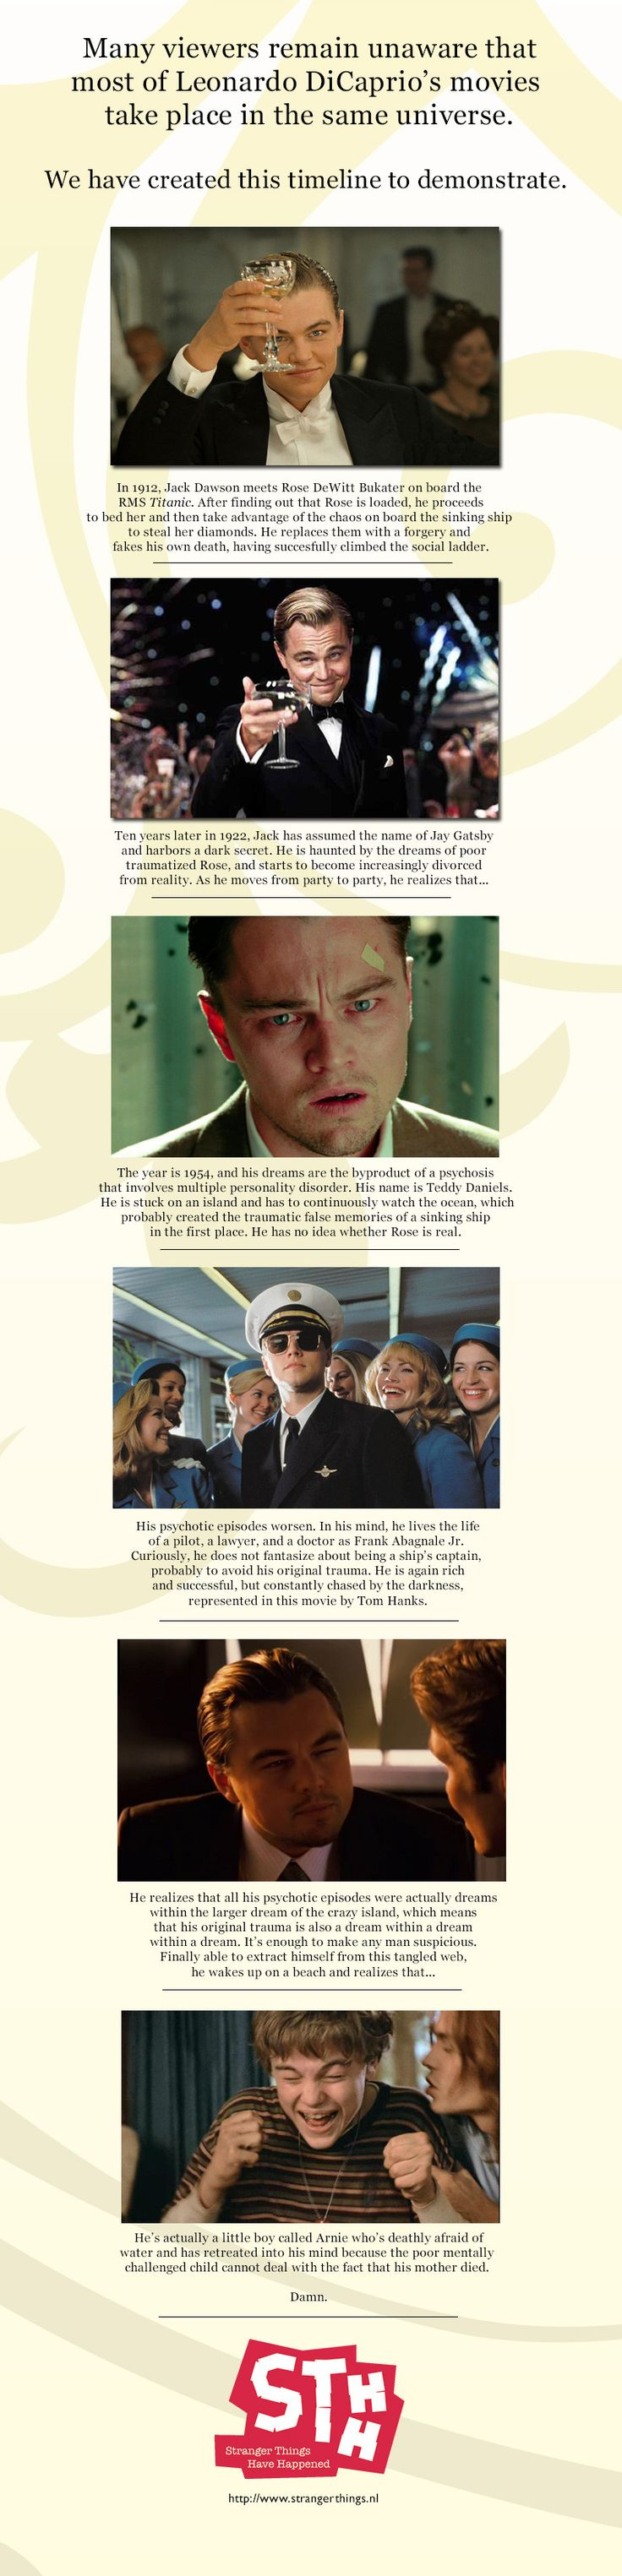 Many viewers remain unaware that most of Leonardo DiCaprio's movies take place in the same universe.